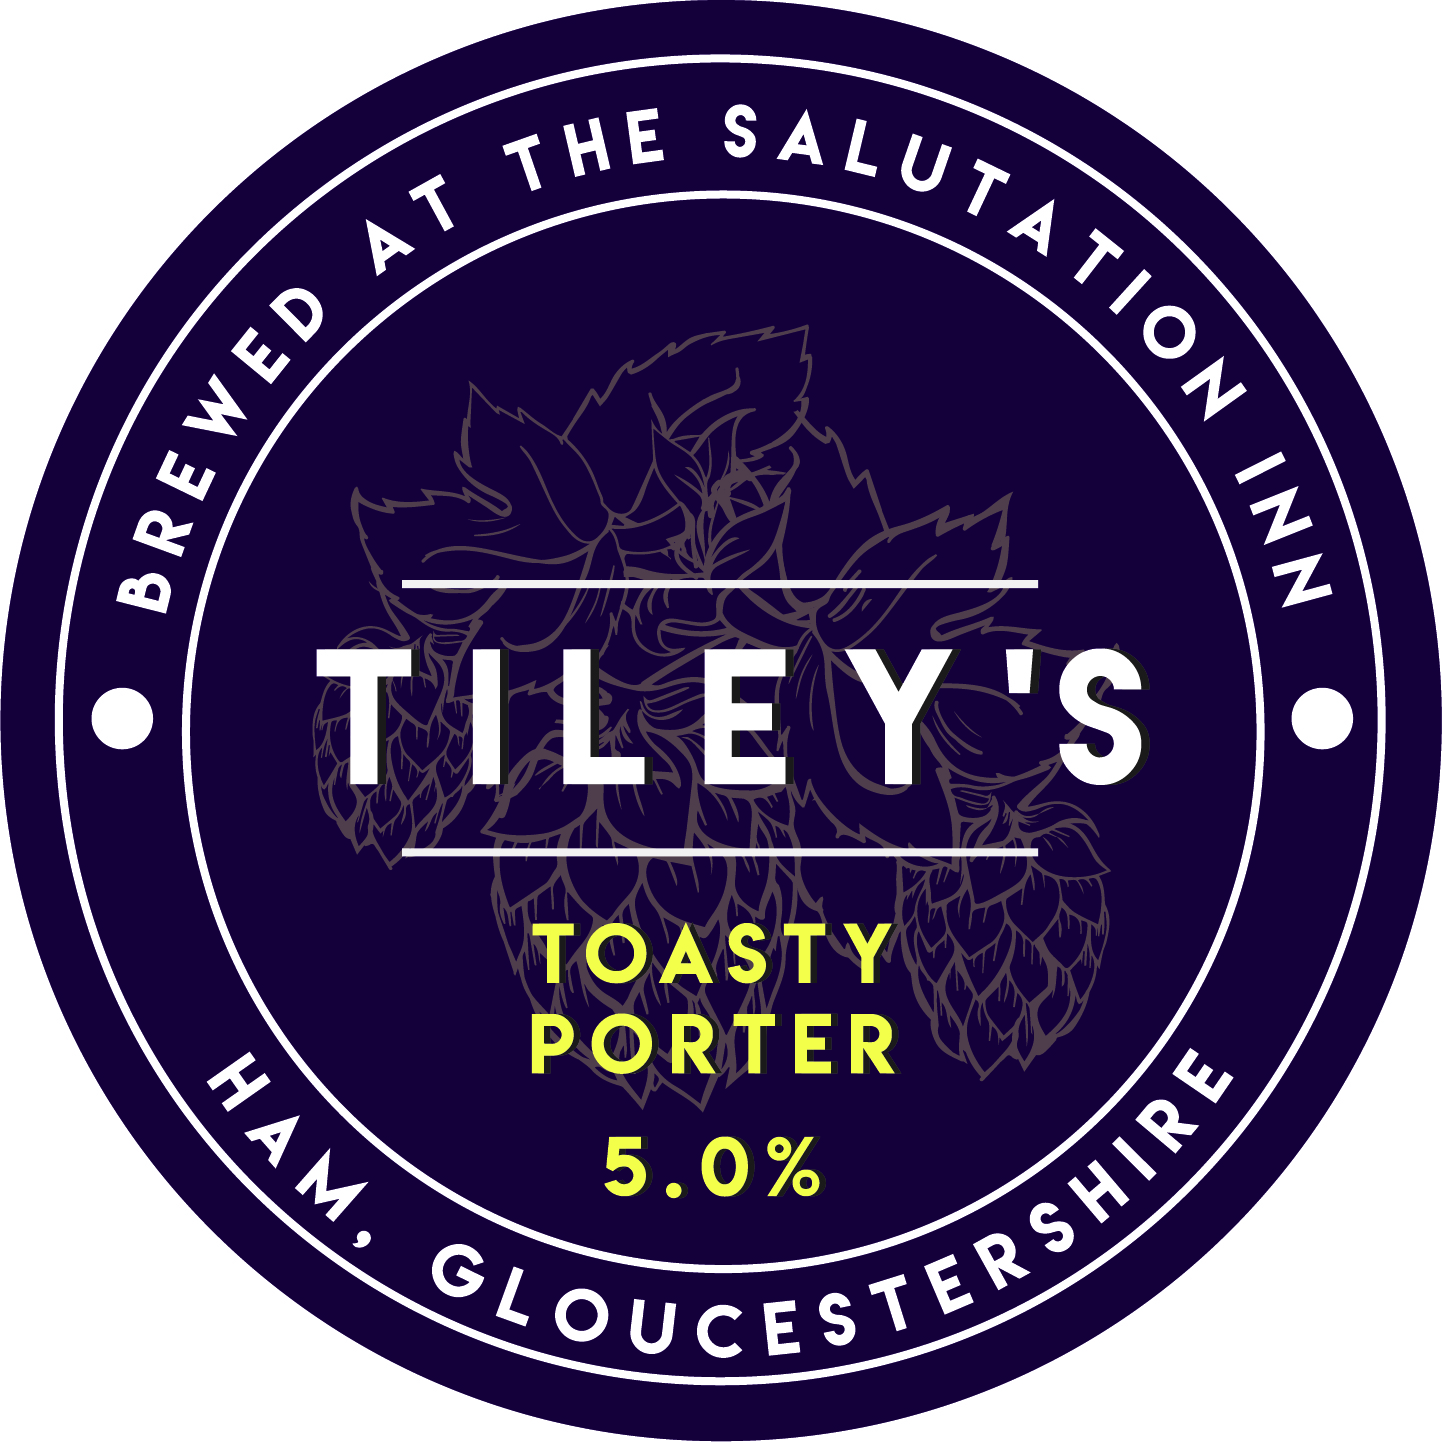 Tiley's Brewery Toasty Porter 5.0% Bag-in-Box